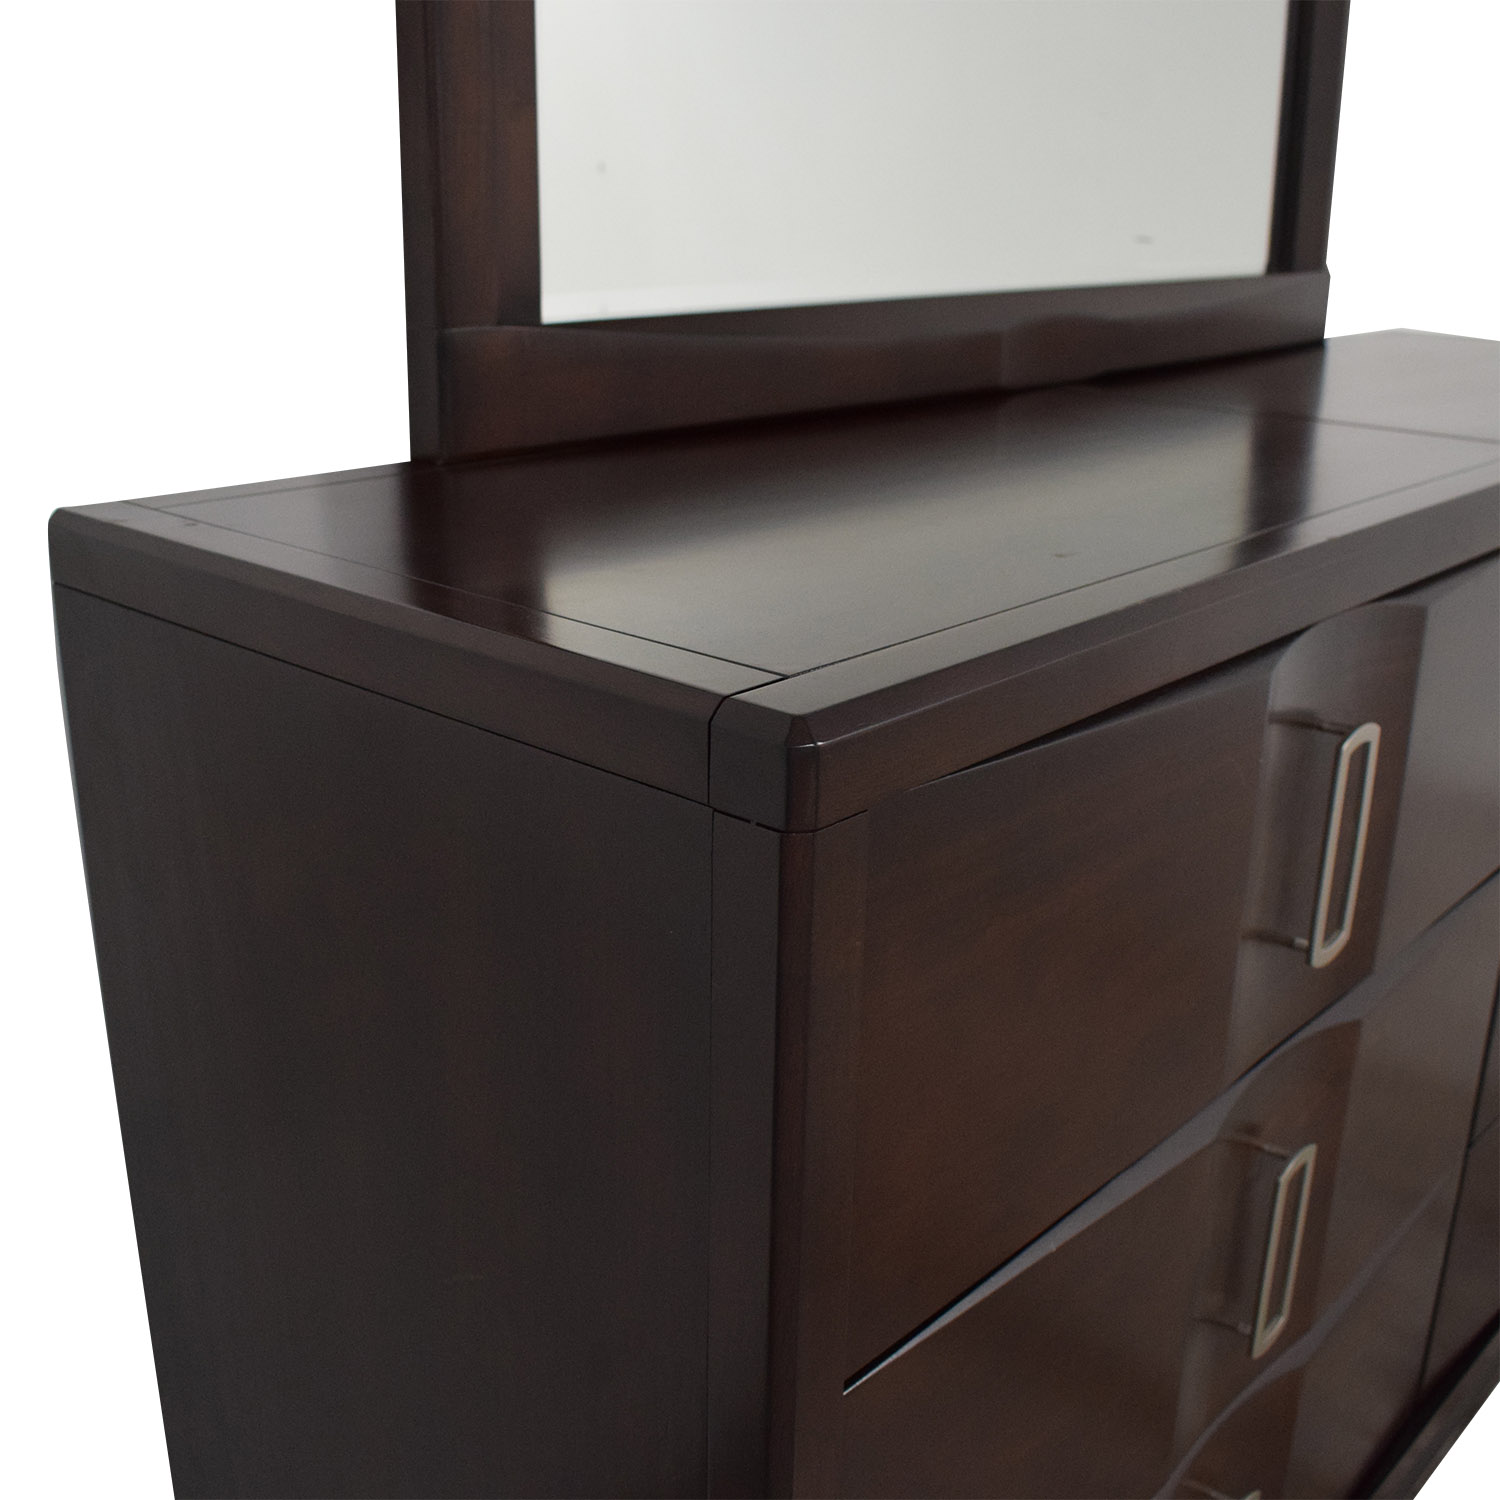 Casana Furniture Casana Furniture Dresser with Mirror ma